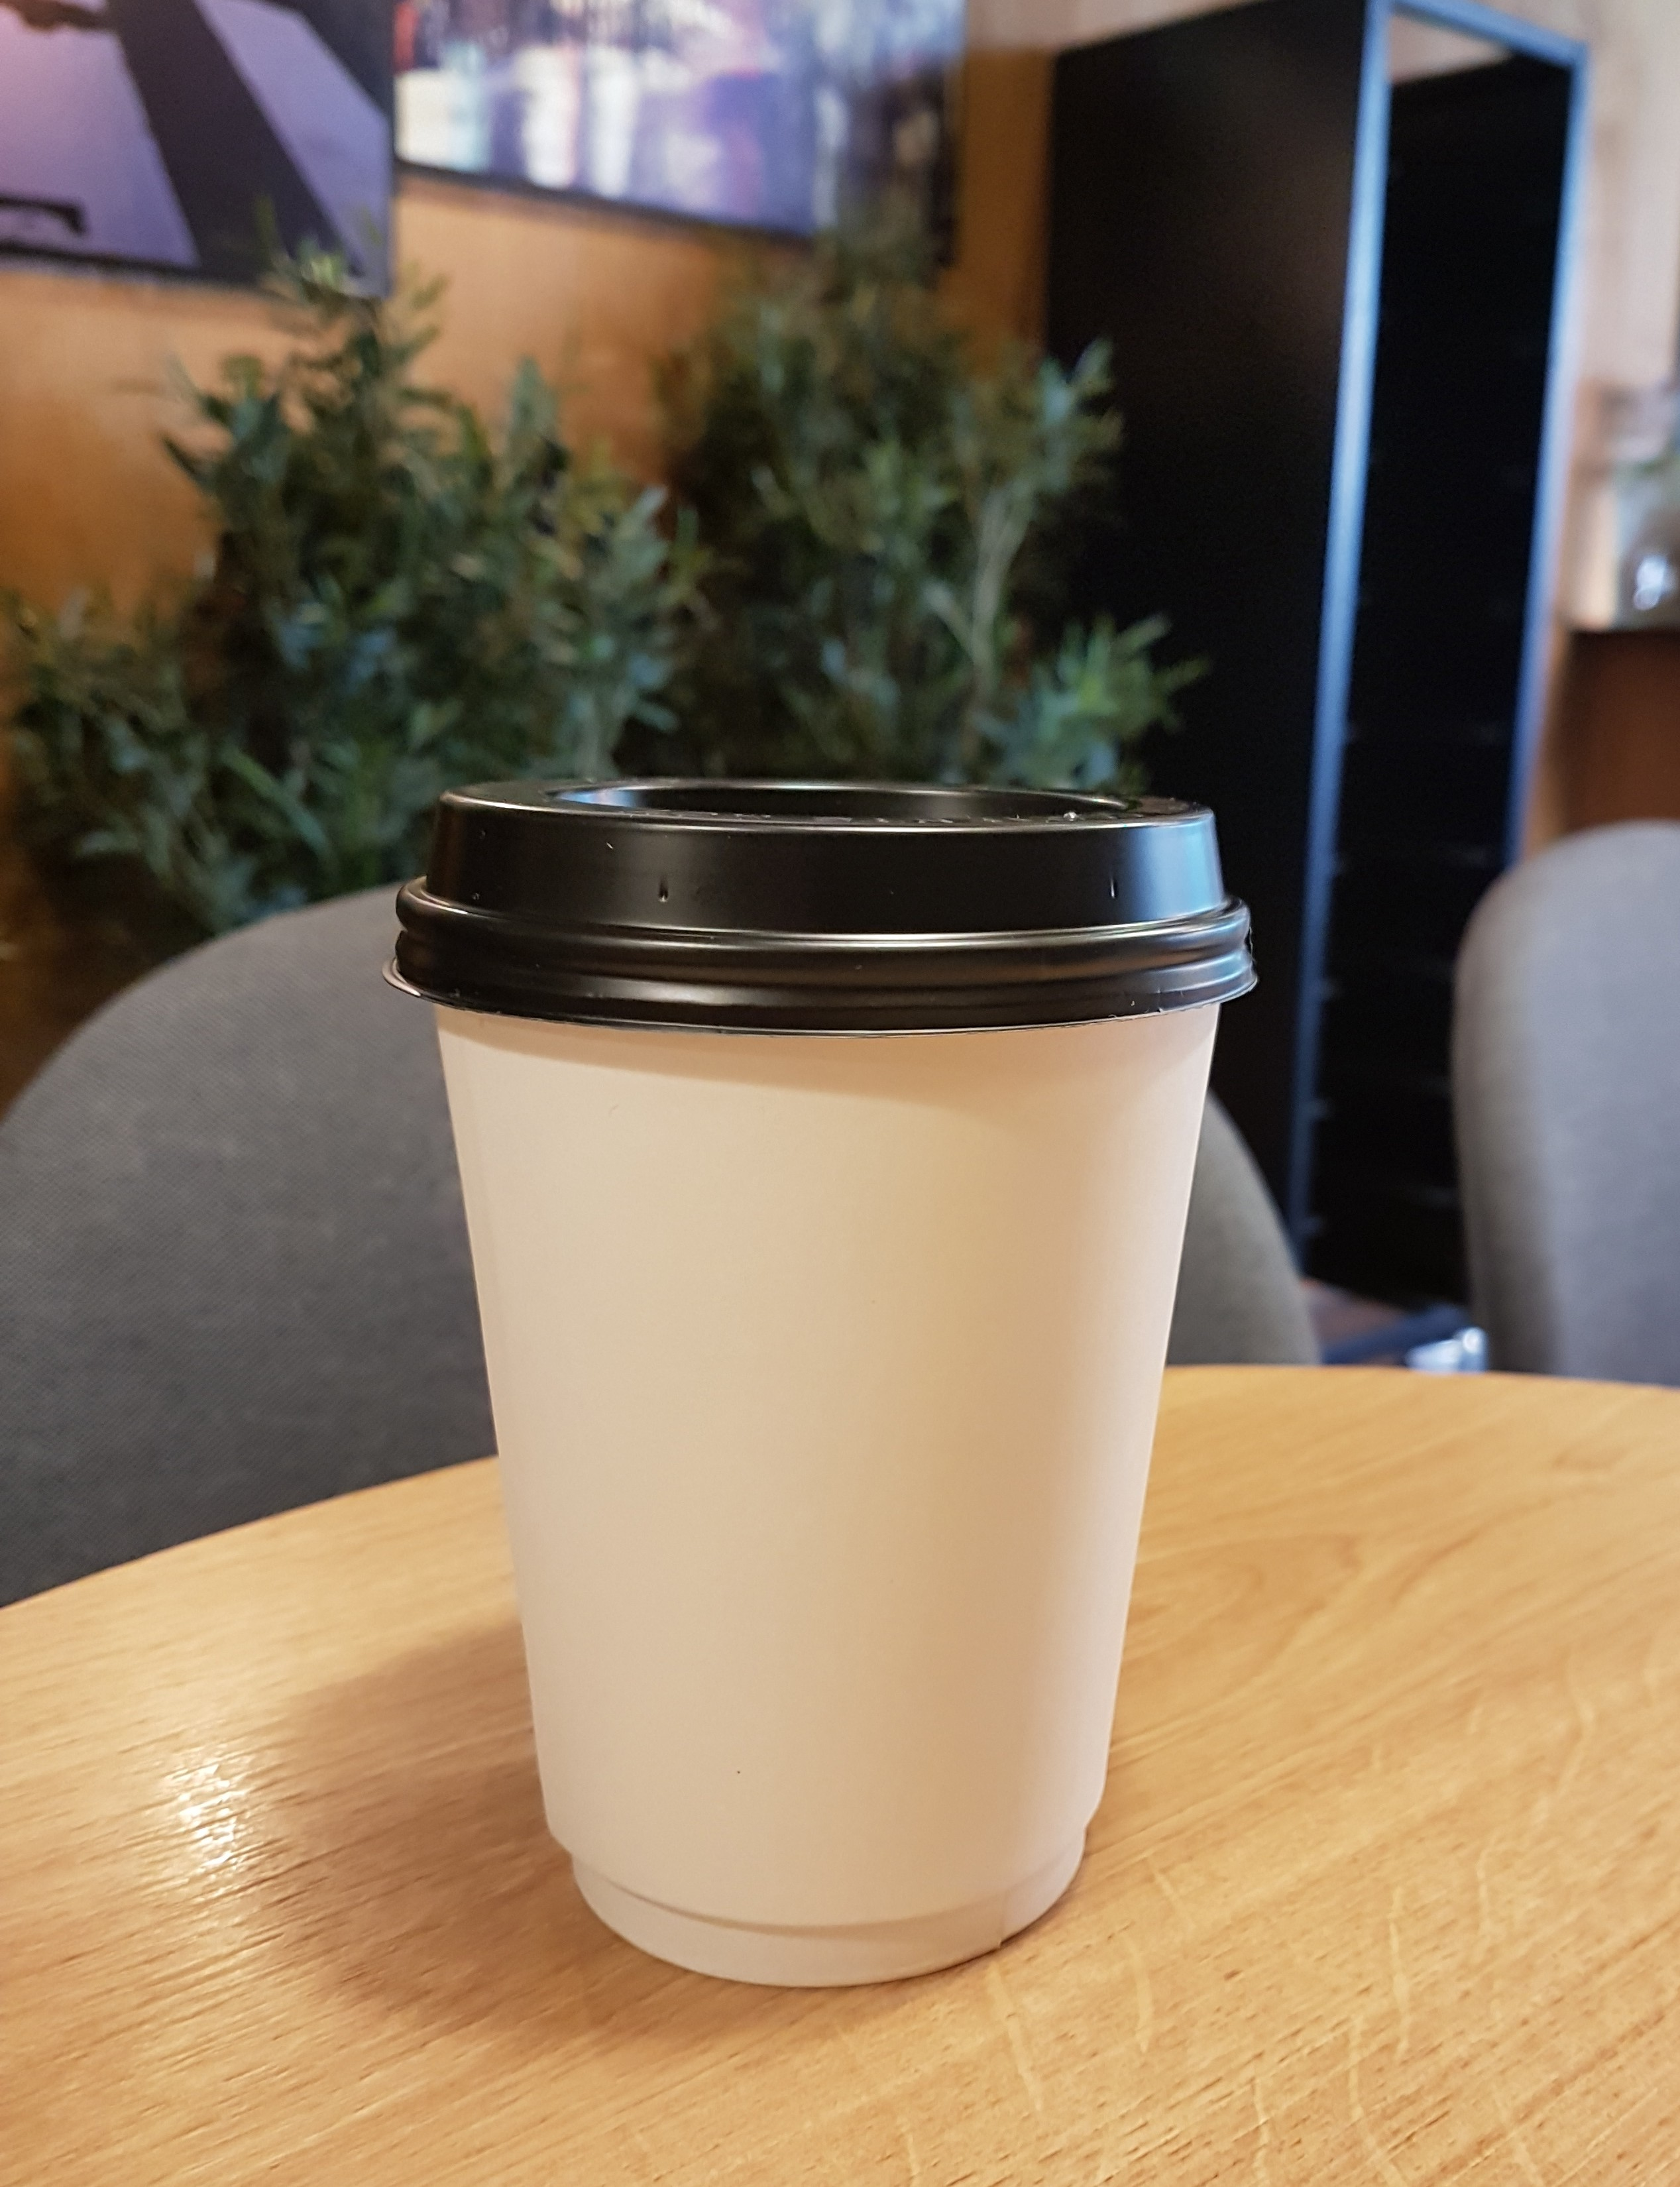 Disposable Coffee Cup Challenge